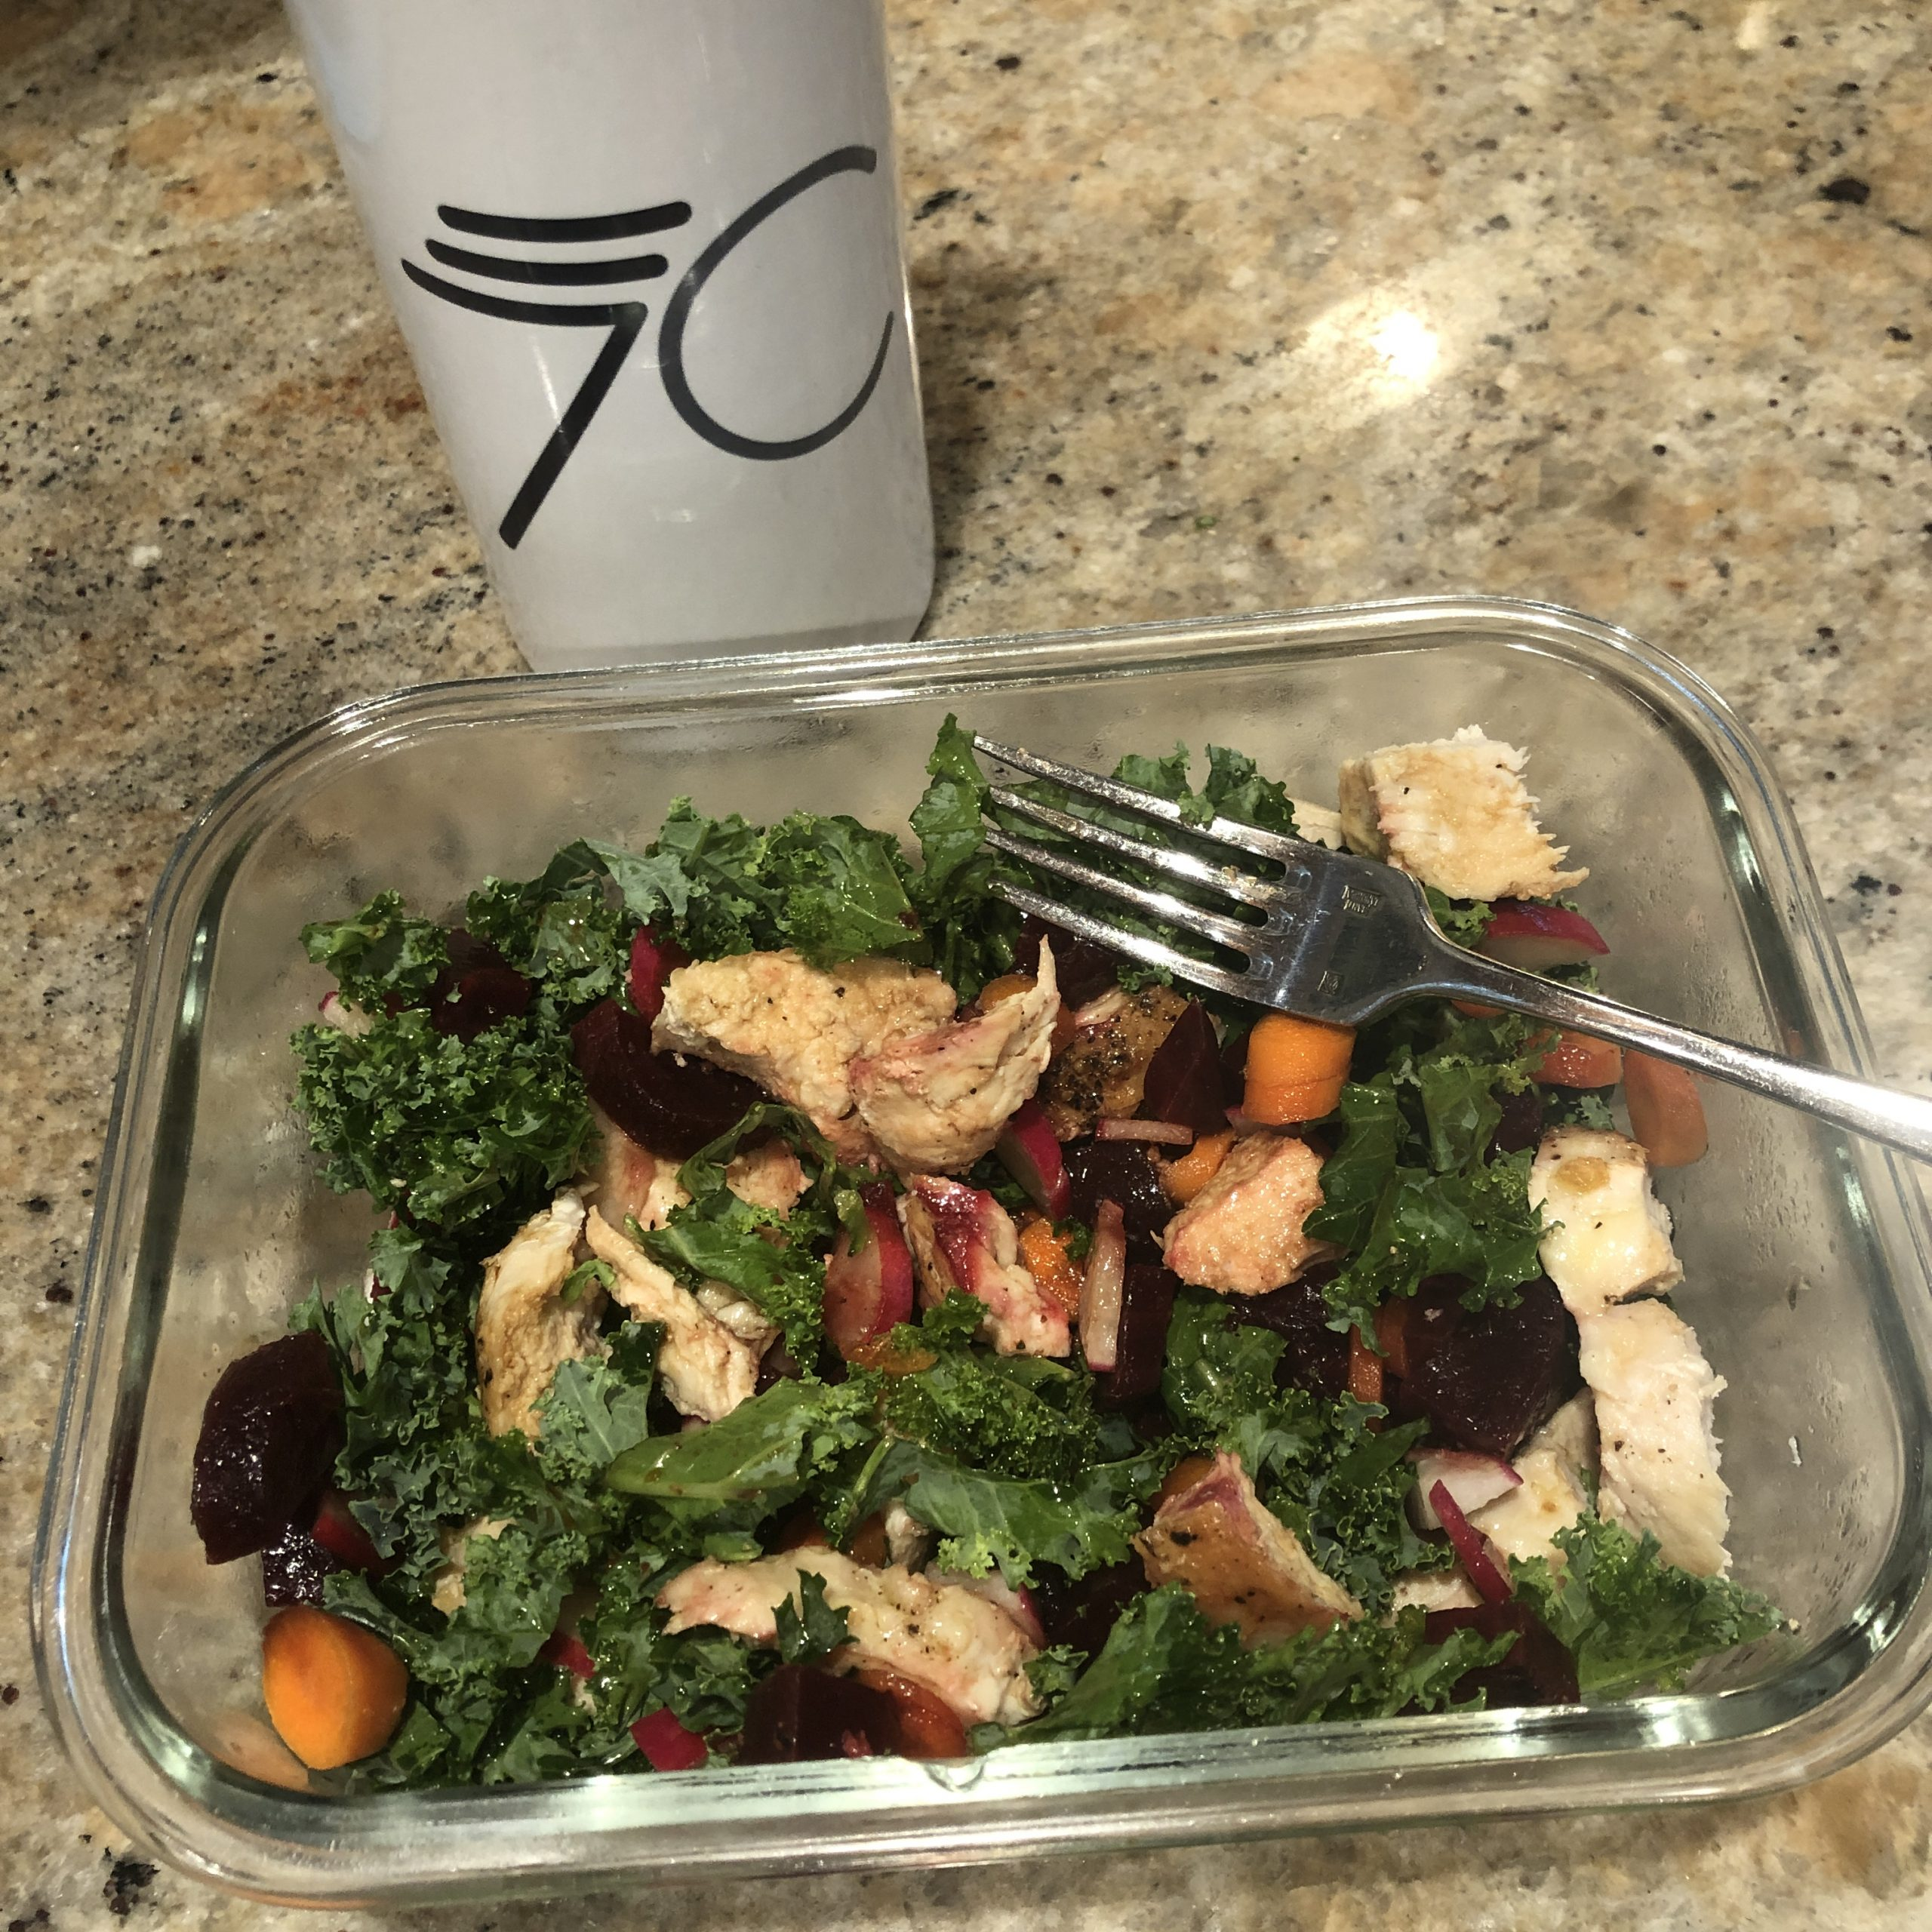 Salad with beets, carrots, and chicken